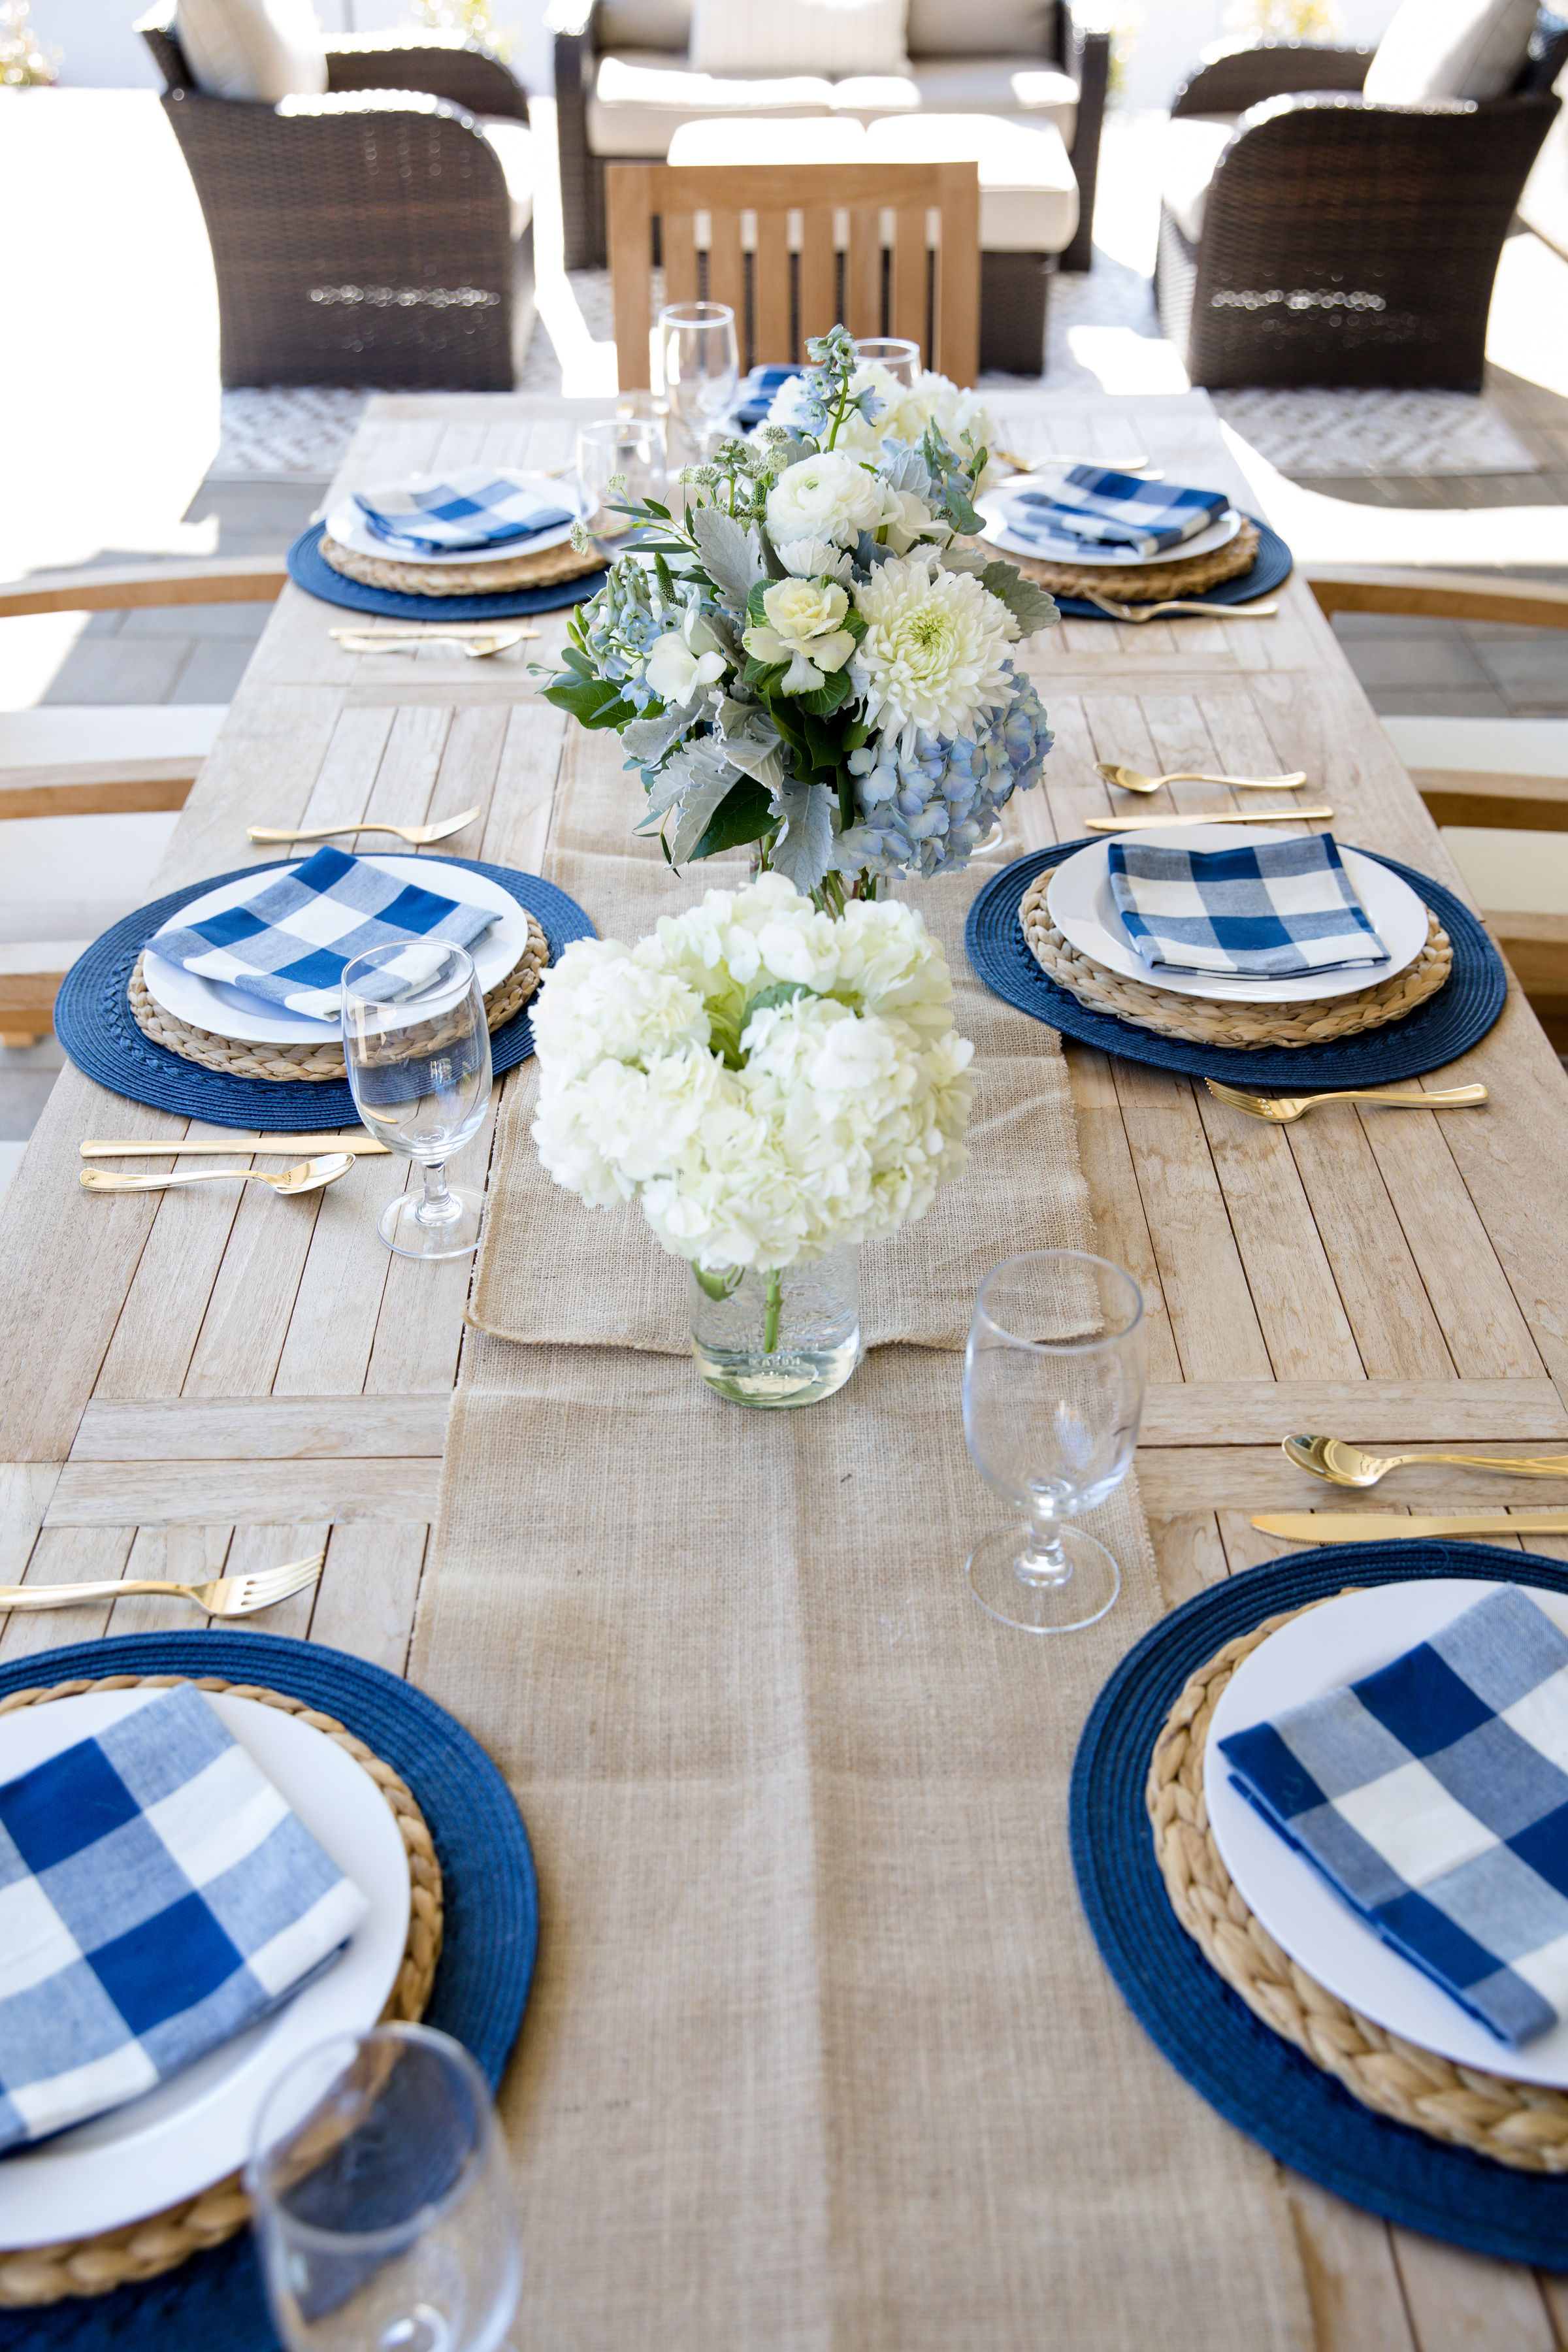 Events-Easter Spring Table Decor Blue and White Gingham tablescape brunch, baby boy shower, baby boy baptism, blessing, thanksgiving, 4th of july, decor, bridal shower 3